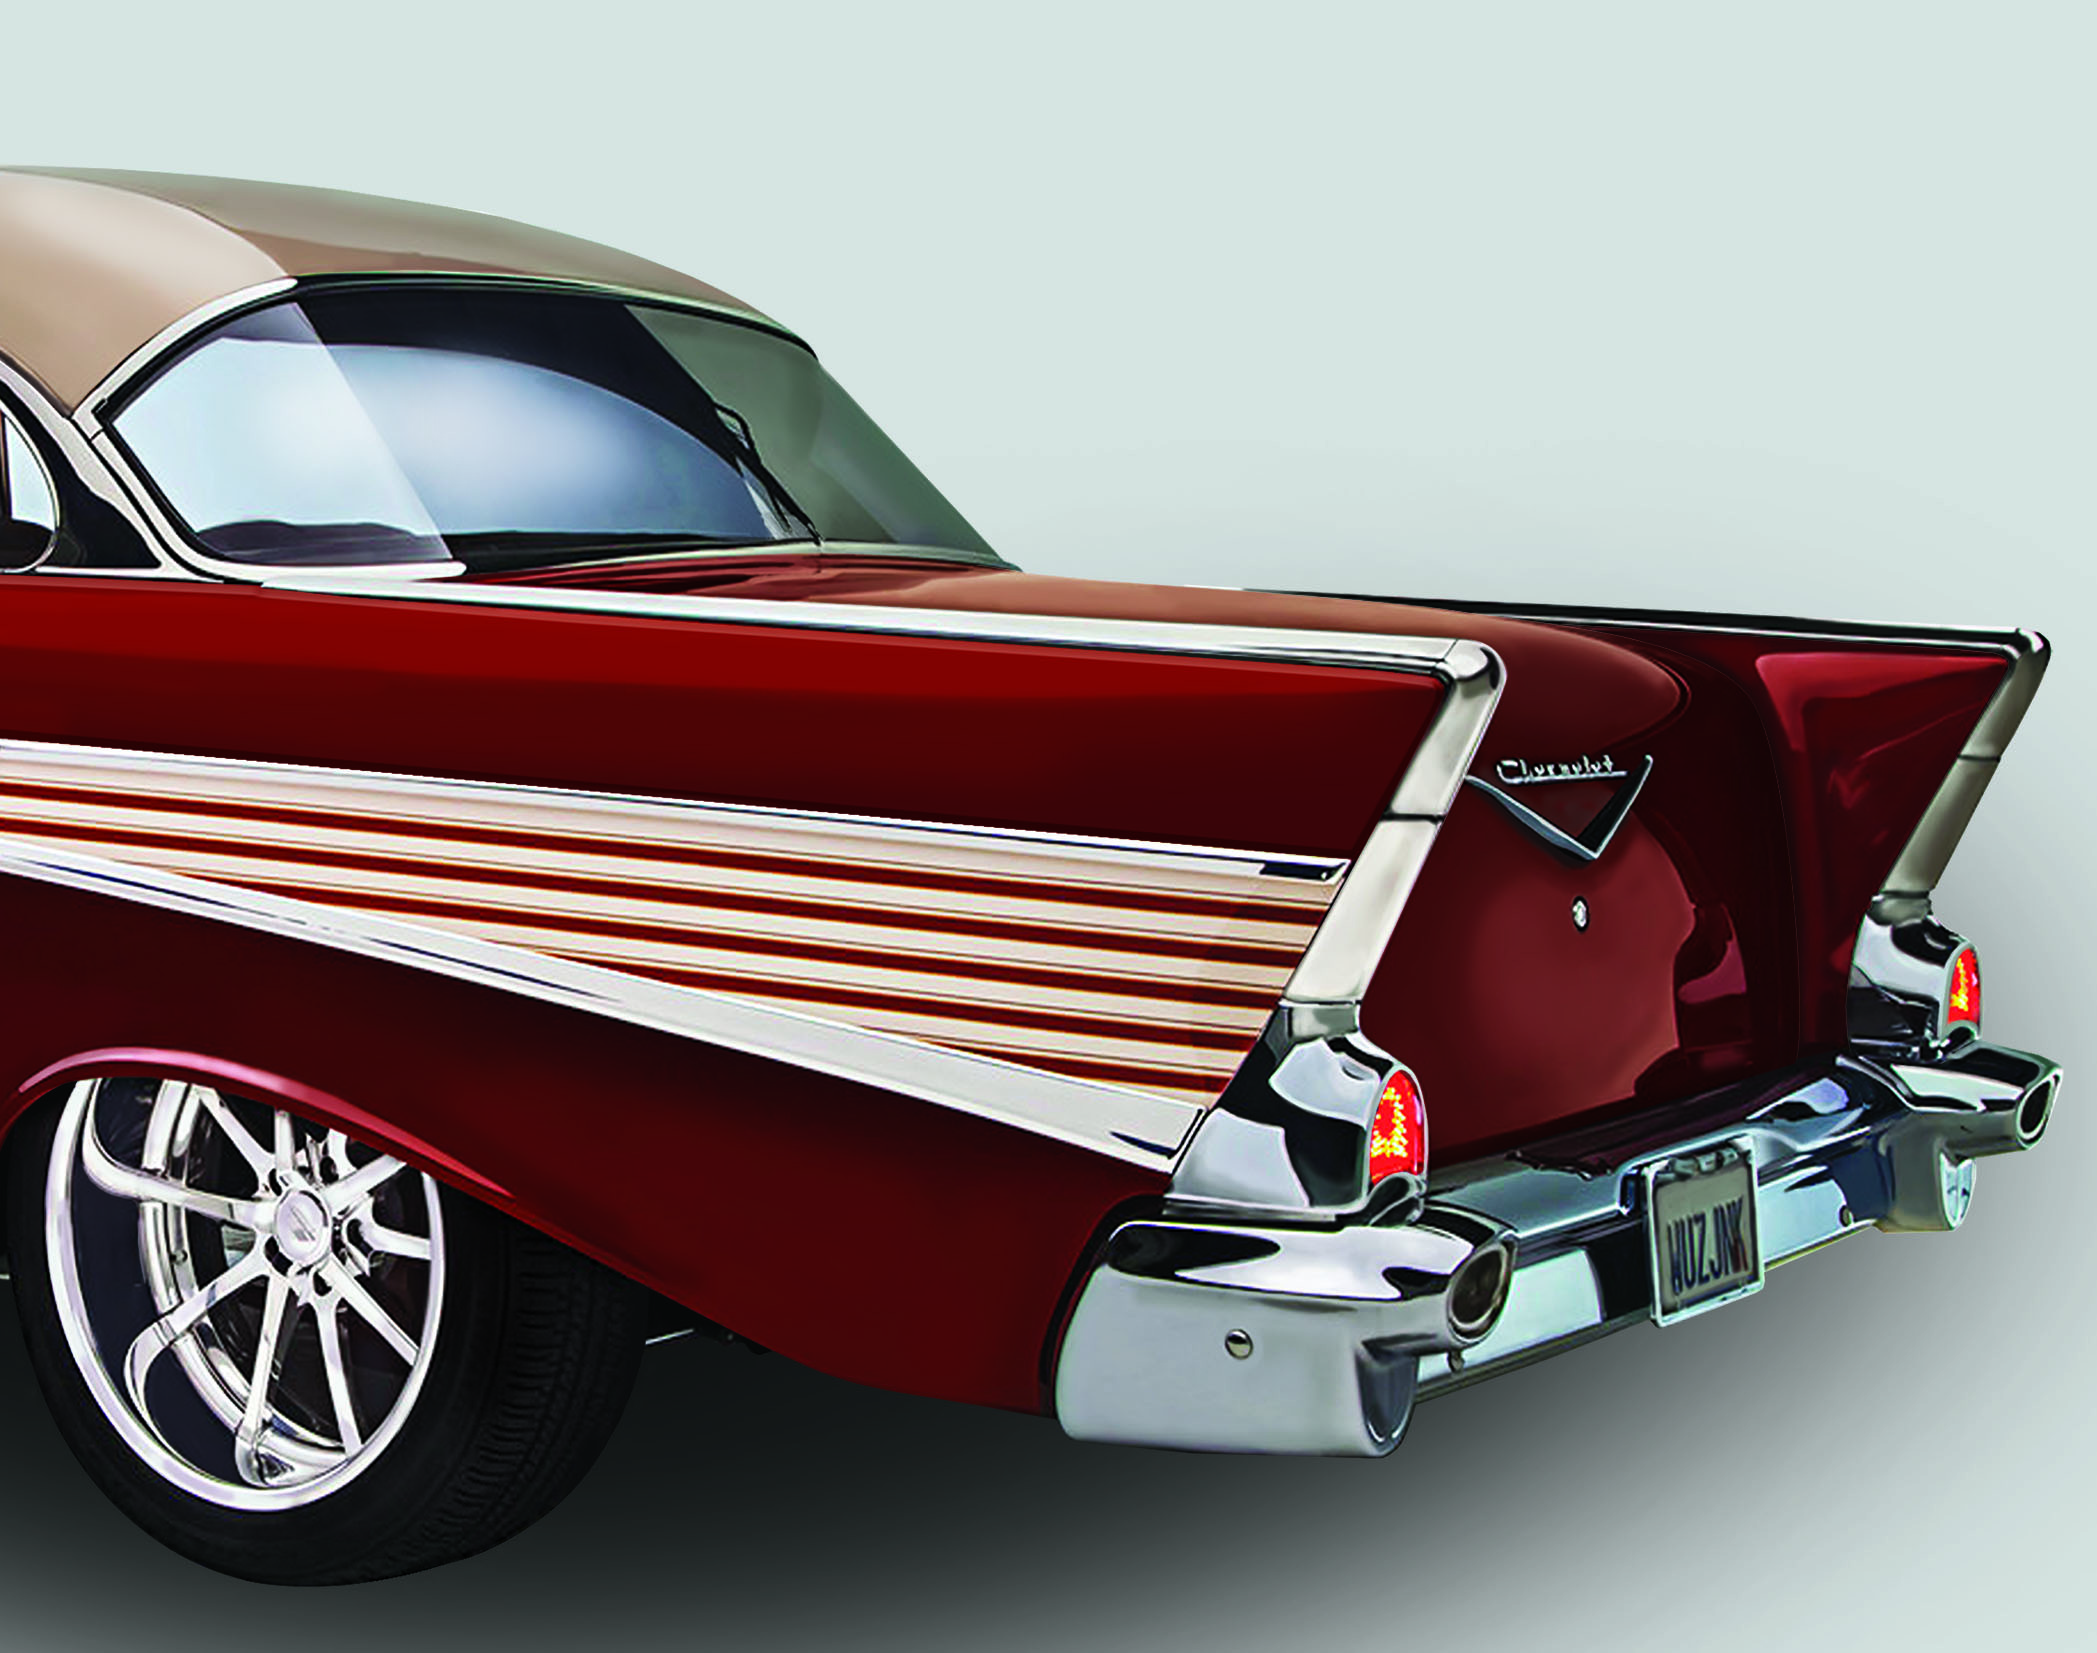 ON THE ROAD/CHEVROLET BEL AIR